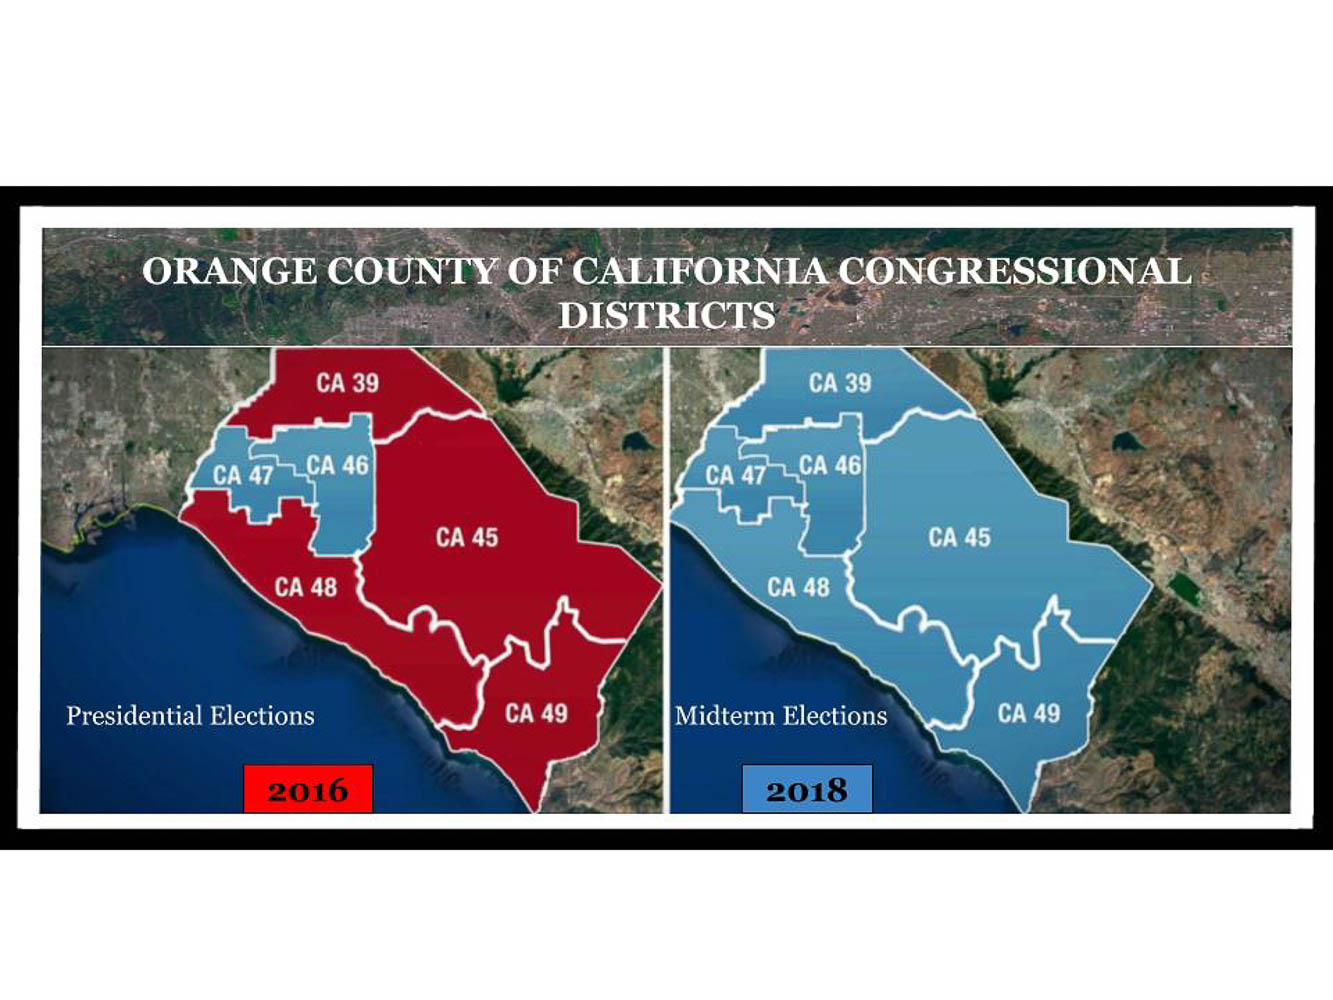 Ever since Orange County was established in 1889, the county has been dominantly Republican. Now the county is more divided than ever with Democrats winning, but only by very small margins.